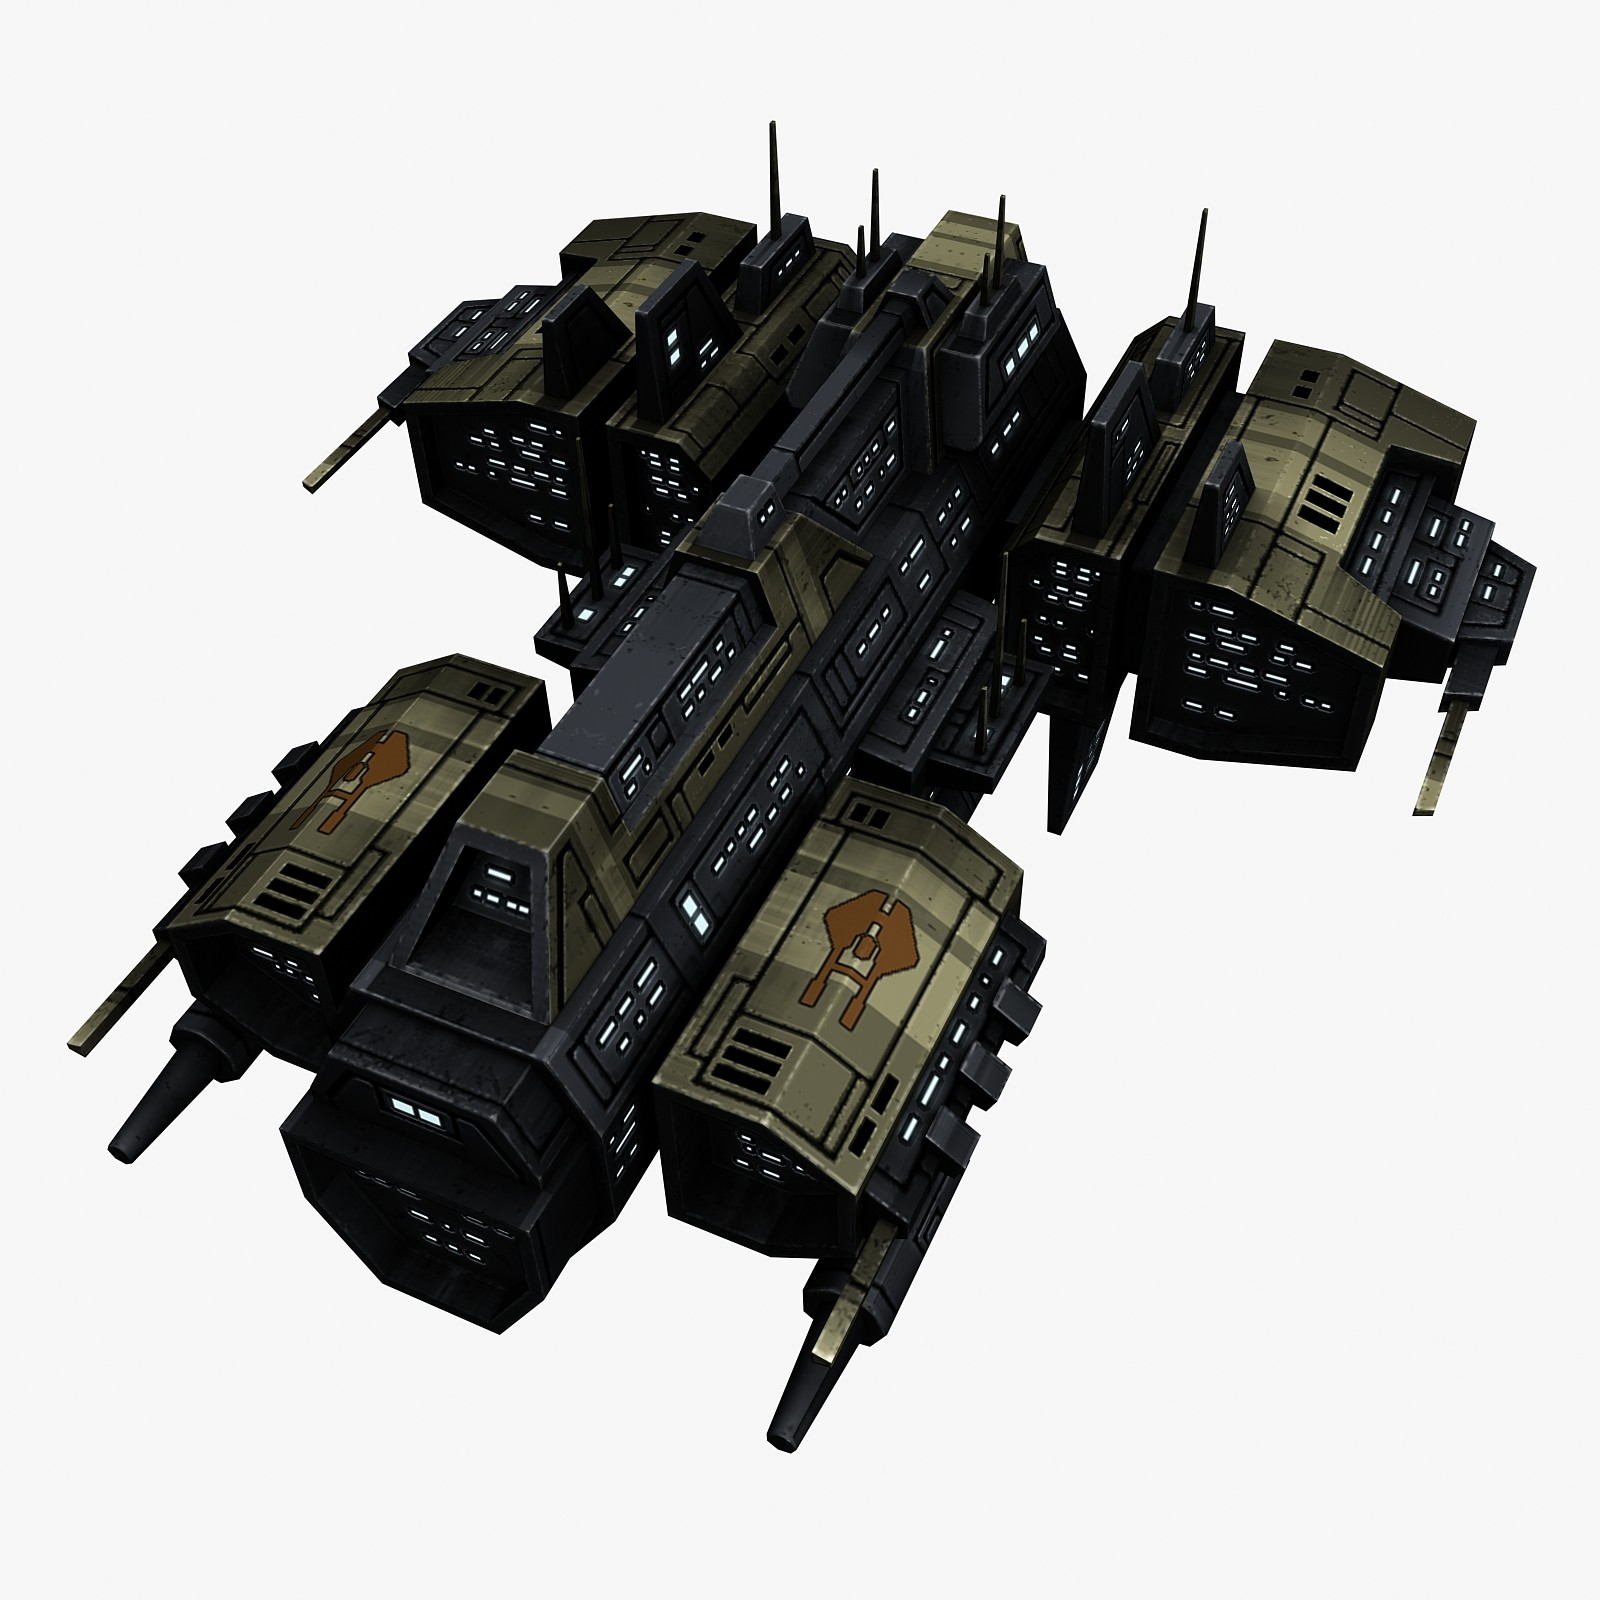 upgraded_civilian_transport_spaceship_1_preview_1.jpg